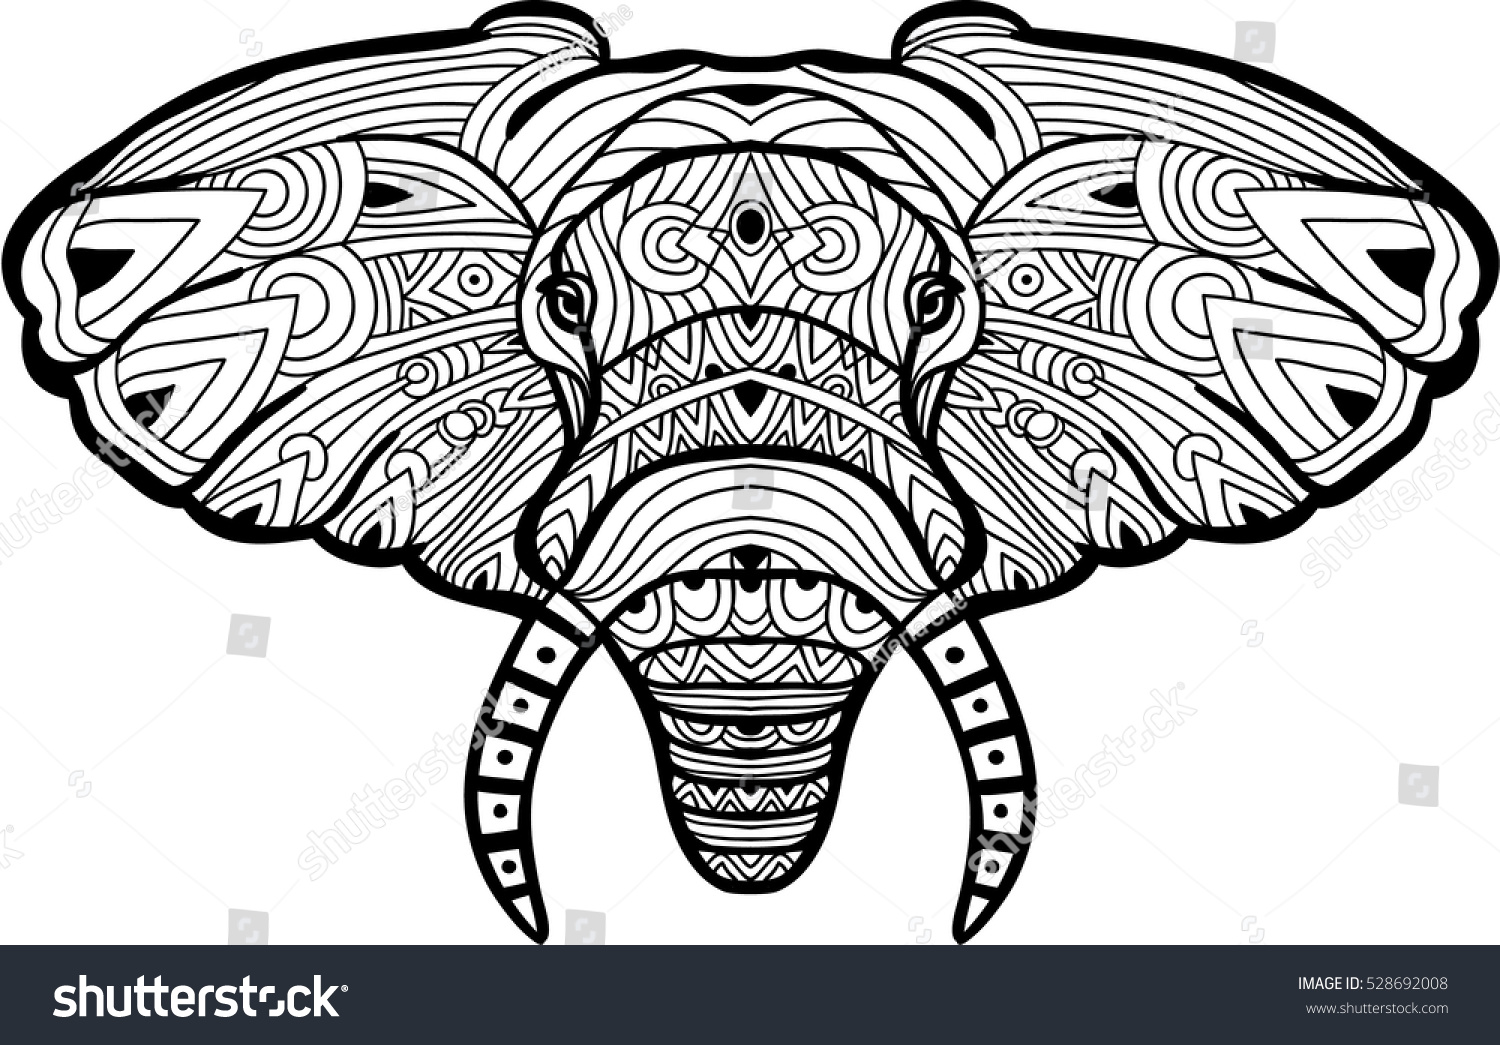 Monochrome Hand Drawn Ink Drawing Painted Elephant On White Background With Tribal Pattern